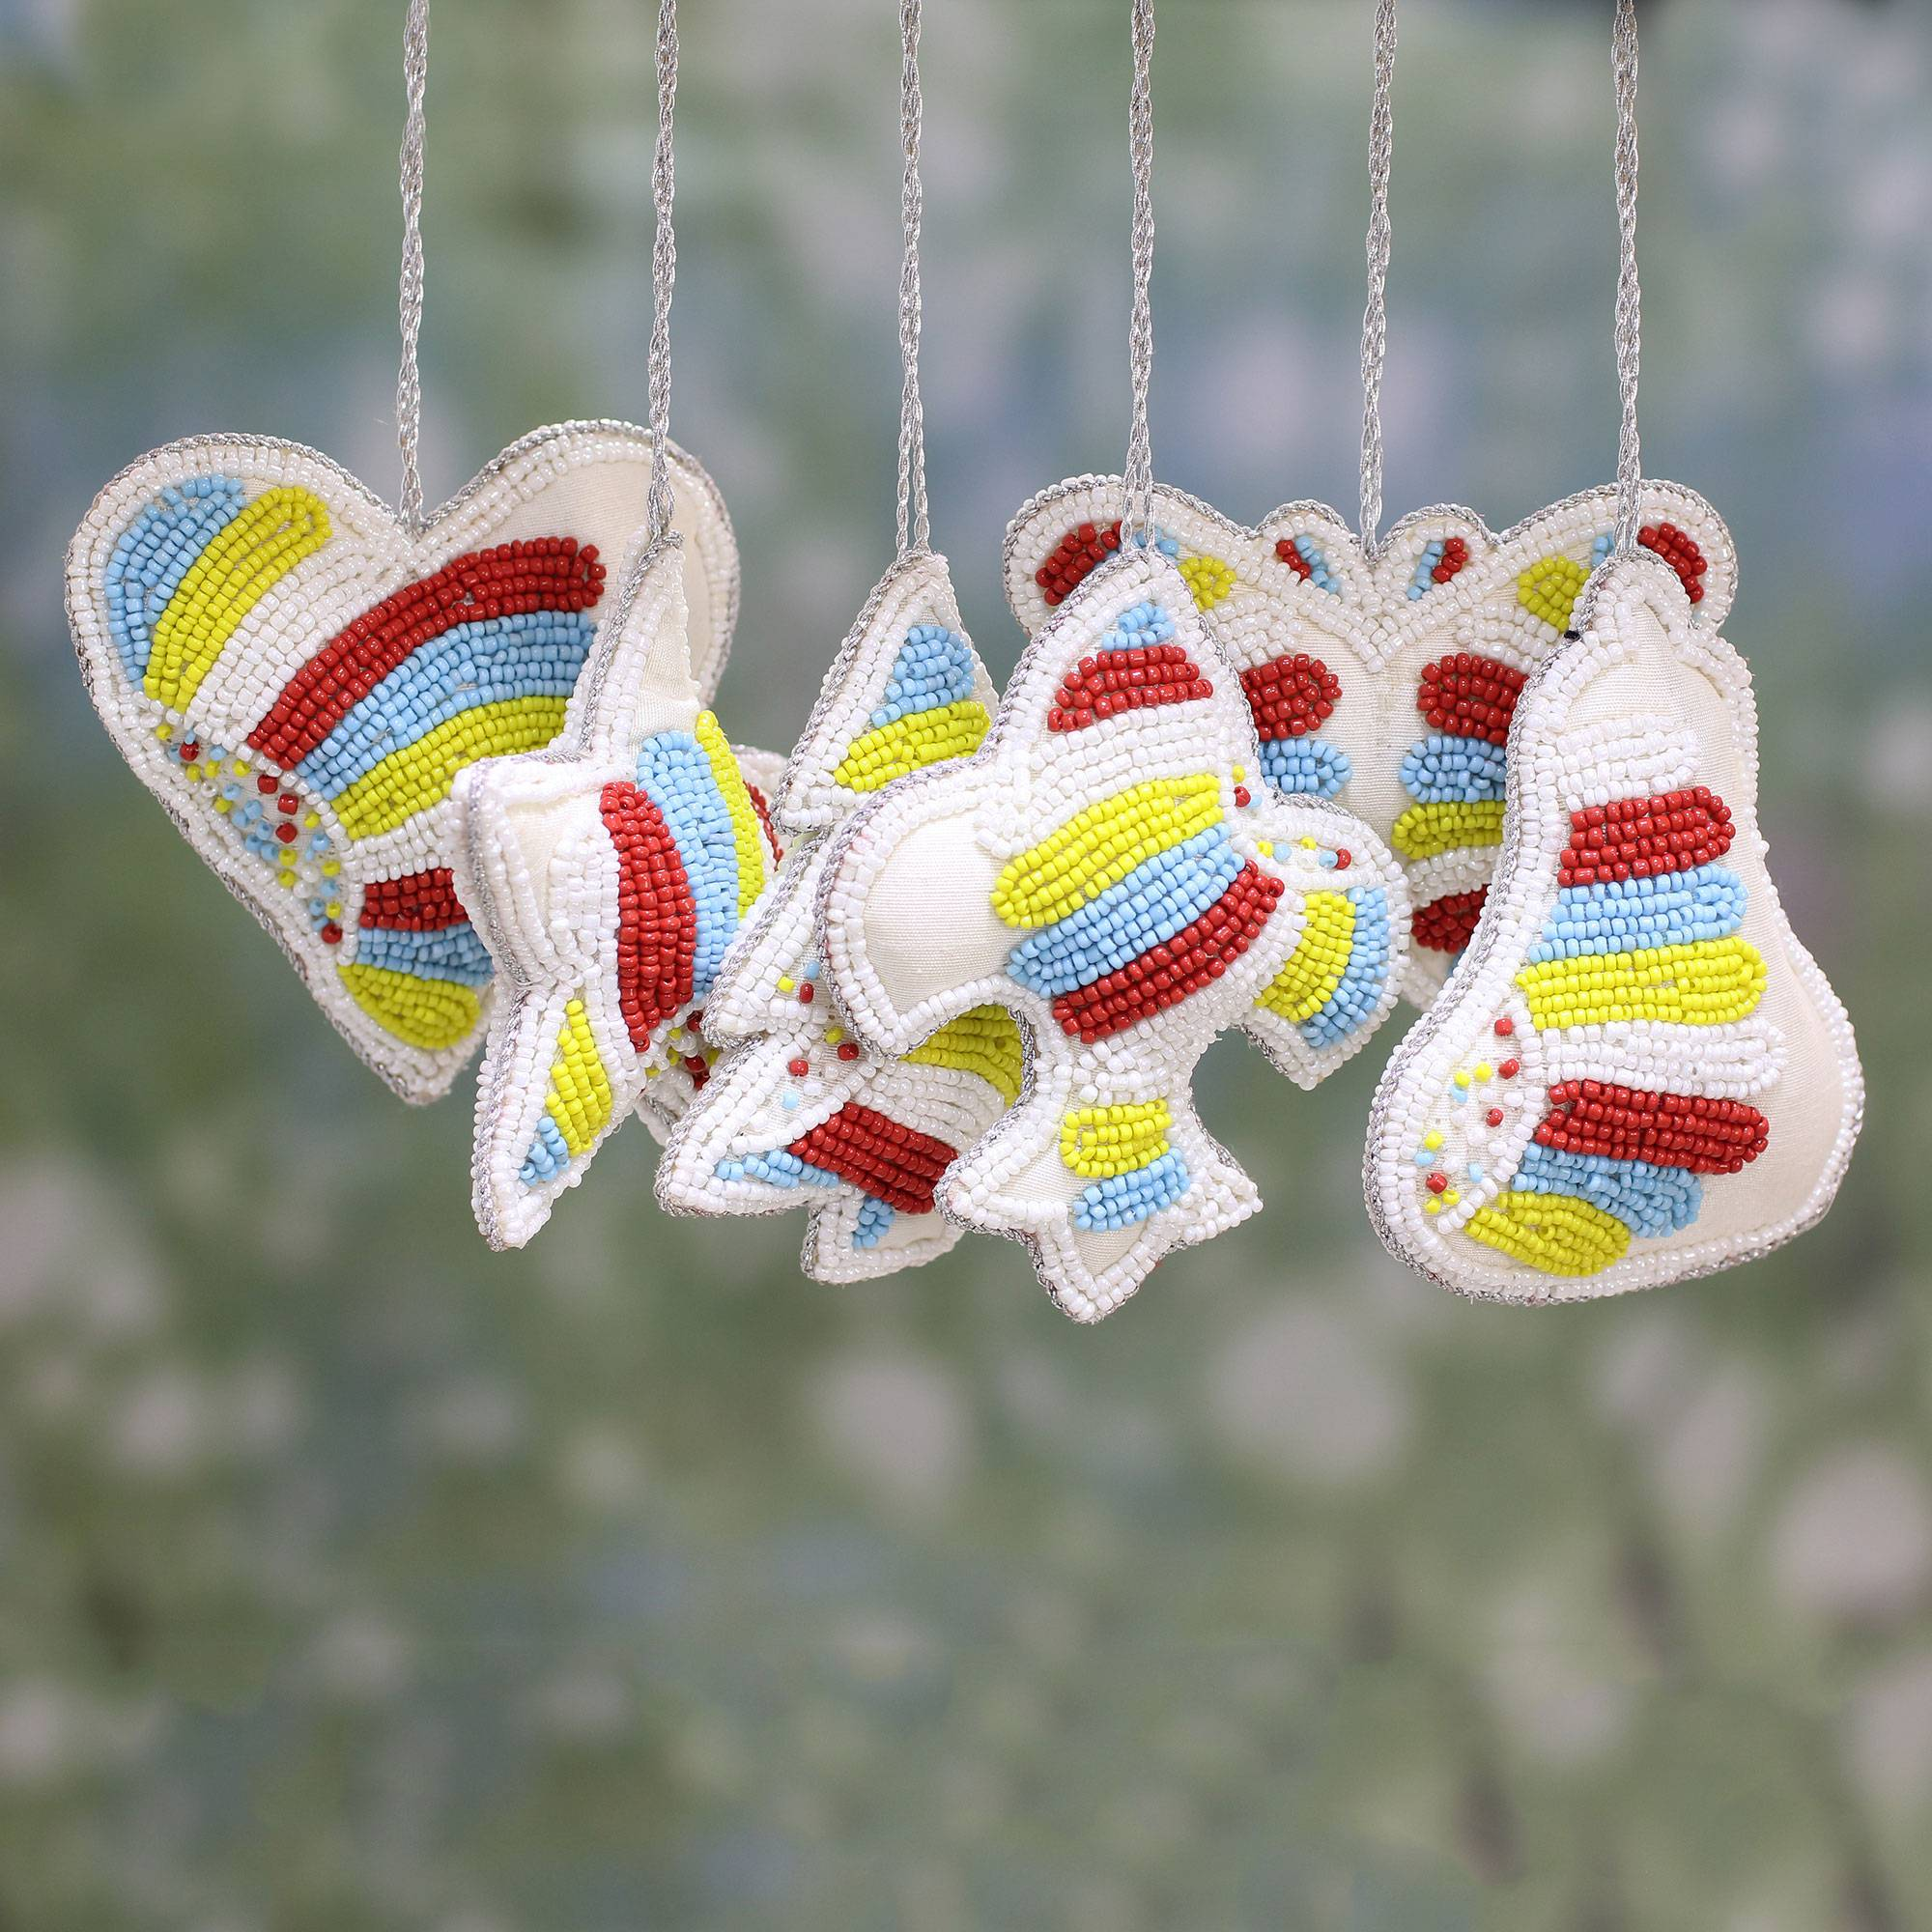 Beaded Christmas Ornaments.Set Of Six Indian Multicolored Beaded Christmas Ornaments Multicolored Christmas Party